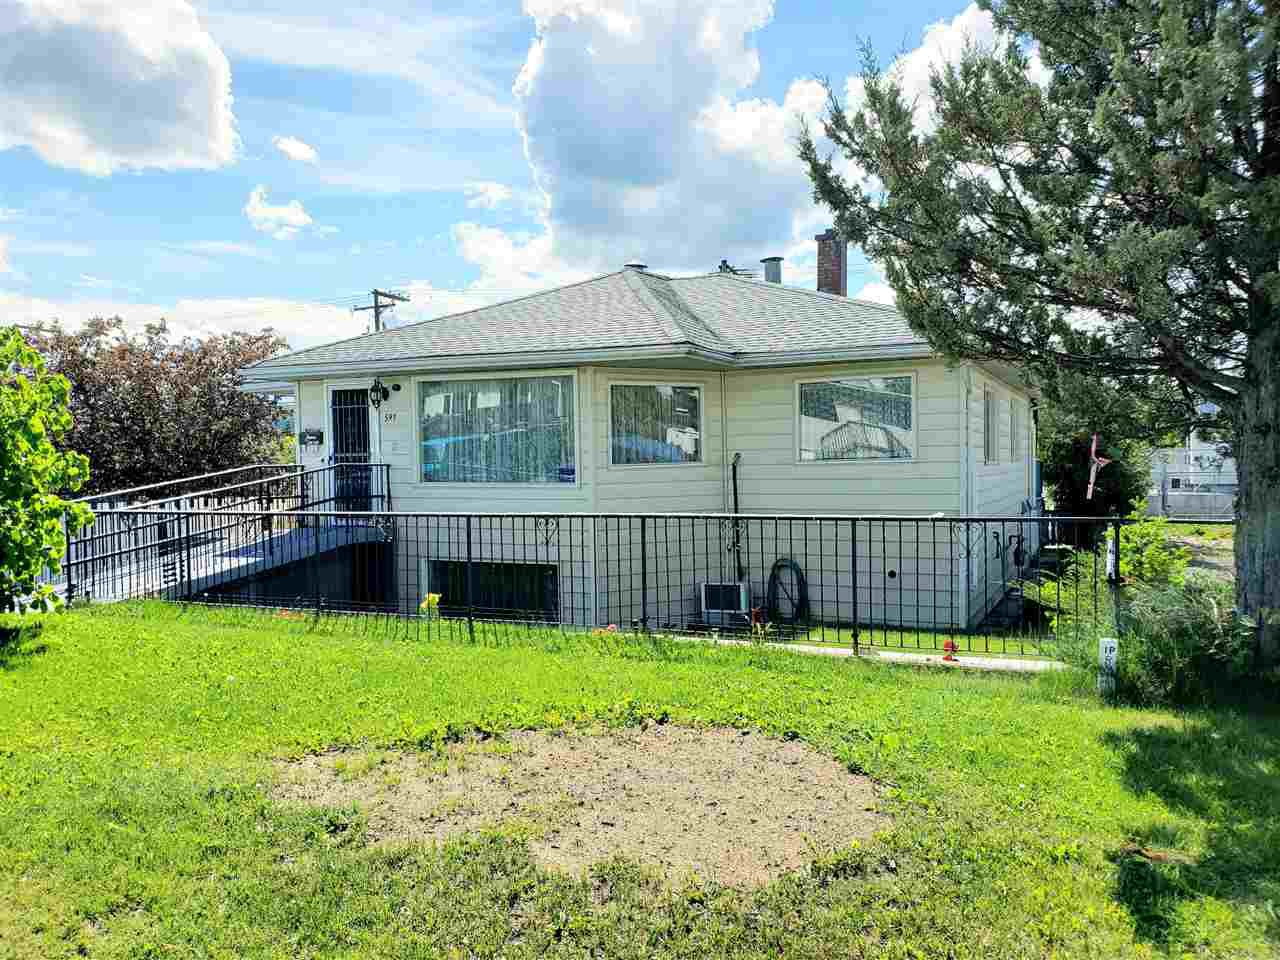 Main Photo: 591 JOHNSON Street in Prince George: Central House for sale (PG City Central (Zone 72))  : MLS®# R2432709